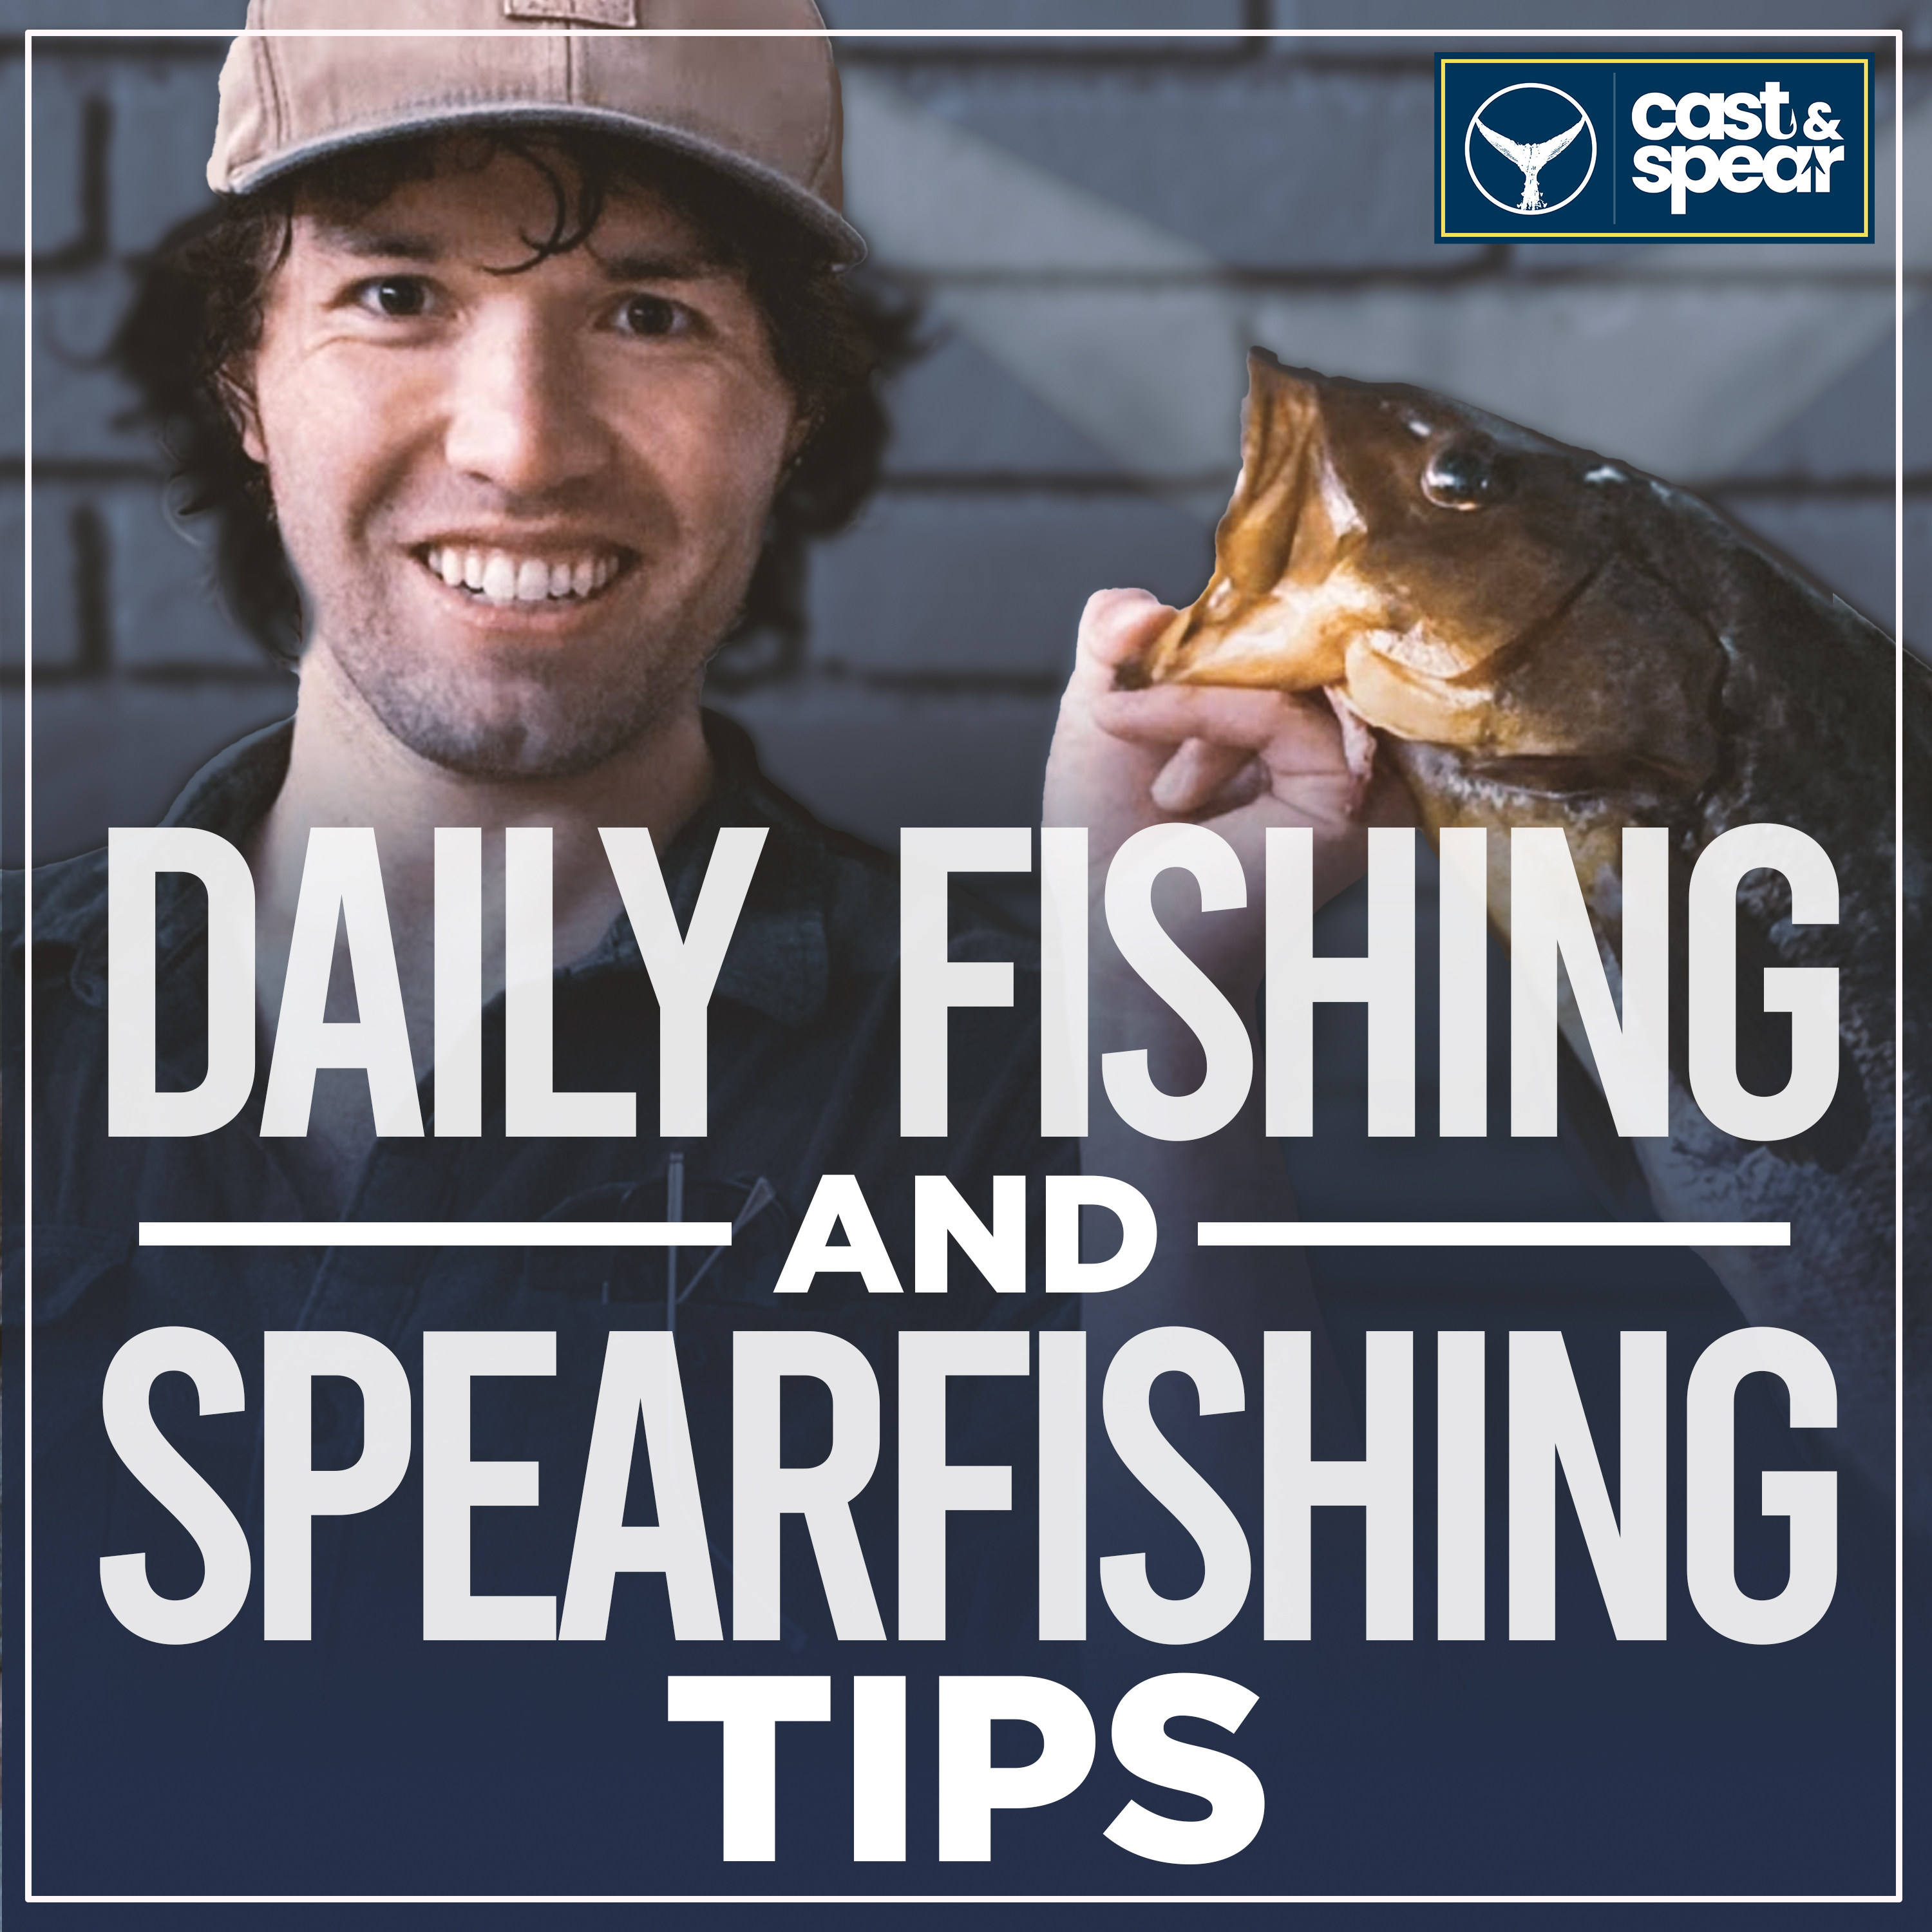 Cast and Spear: Daily Fishing & Spearfishing Tips show art